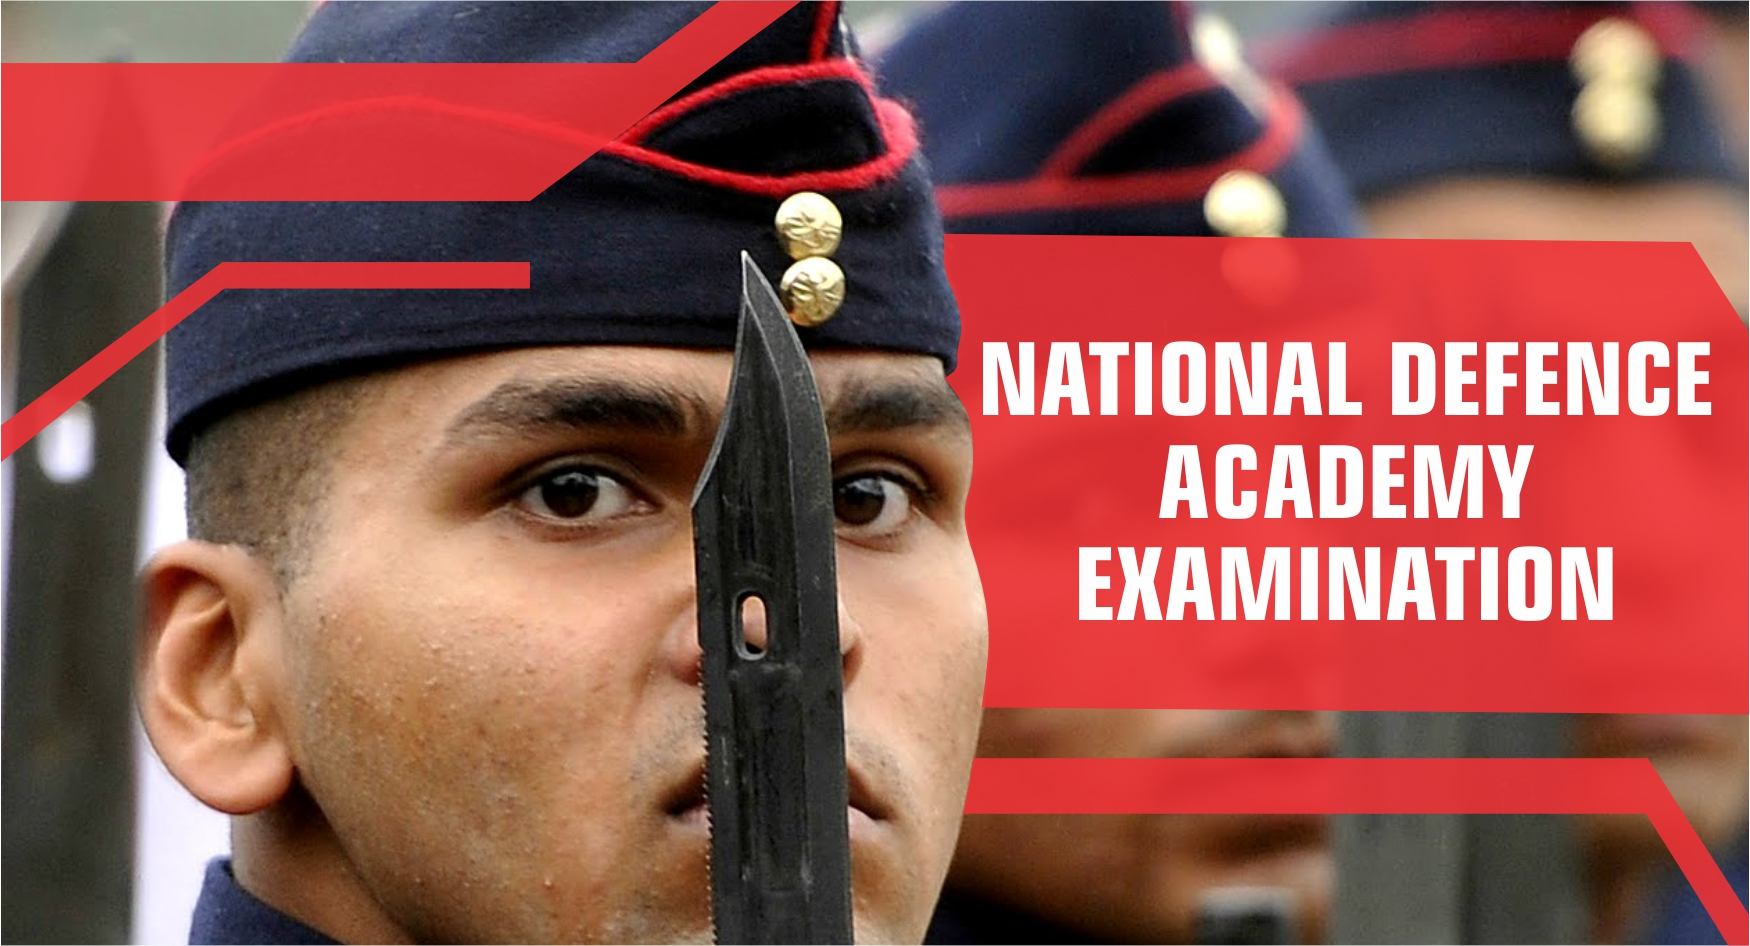 Exams Under UPSC - National Defence Academy Examination